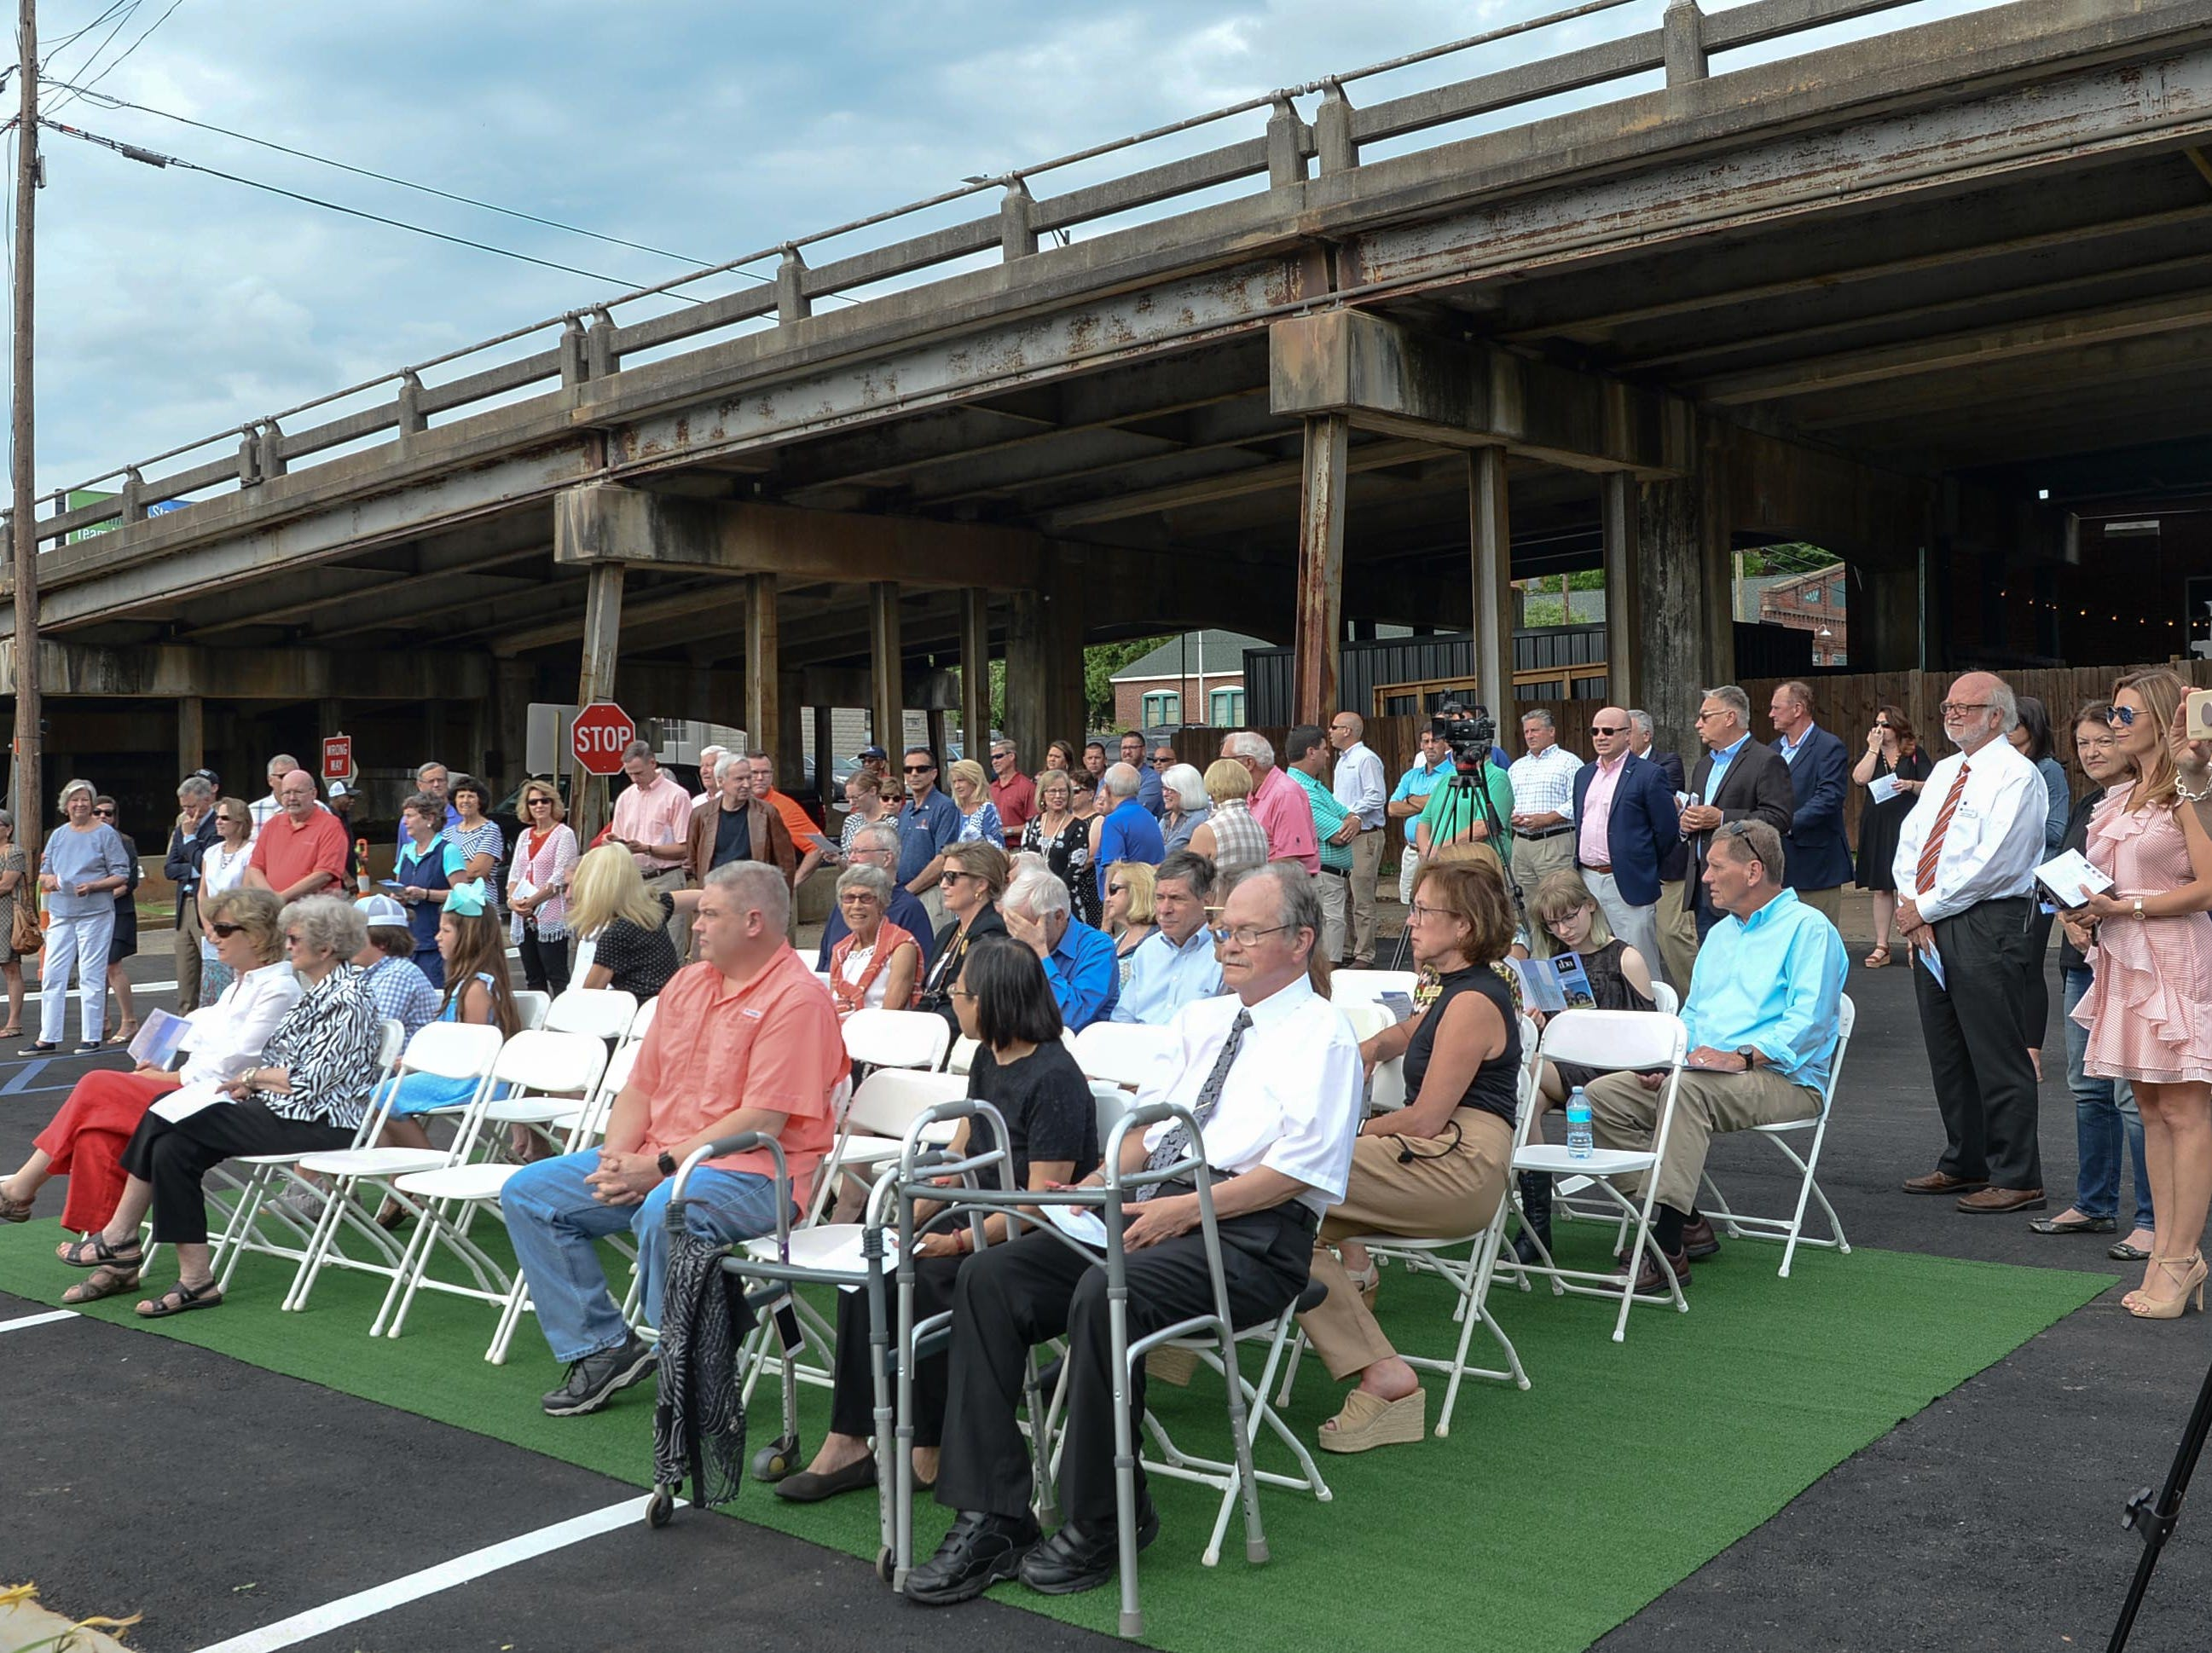 A crowd listens to Mayor Terence Roberts speak about the Under the bridge project called Textile Point in downtown Anderson Thursday, May 9, 2019. Scott Foster of Anderson designed the monument honoring years of textile mills in Anderson, with support partners from To Benefit Anderson, South Carolina Heritage Corridor, the Rotary Club of Anderson, and the City of Anderson.